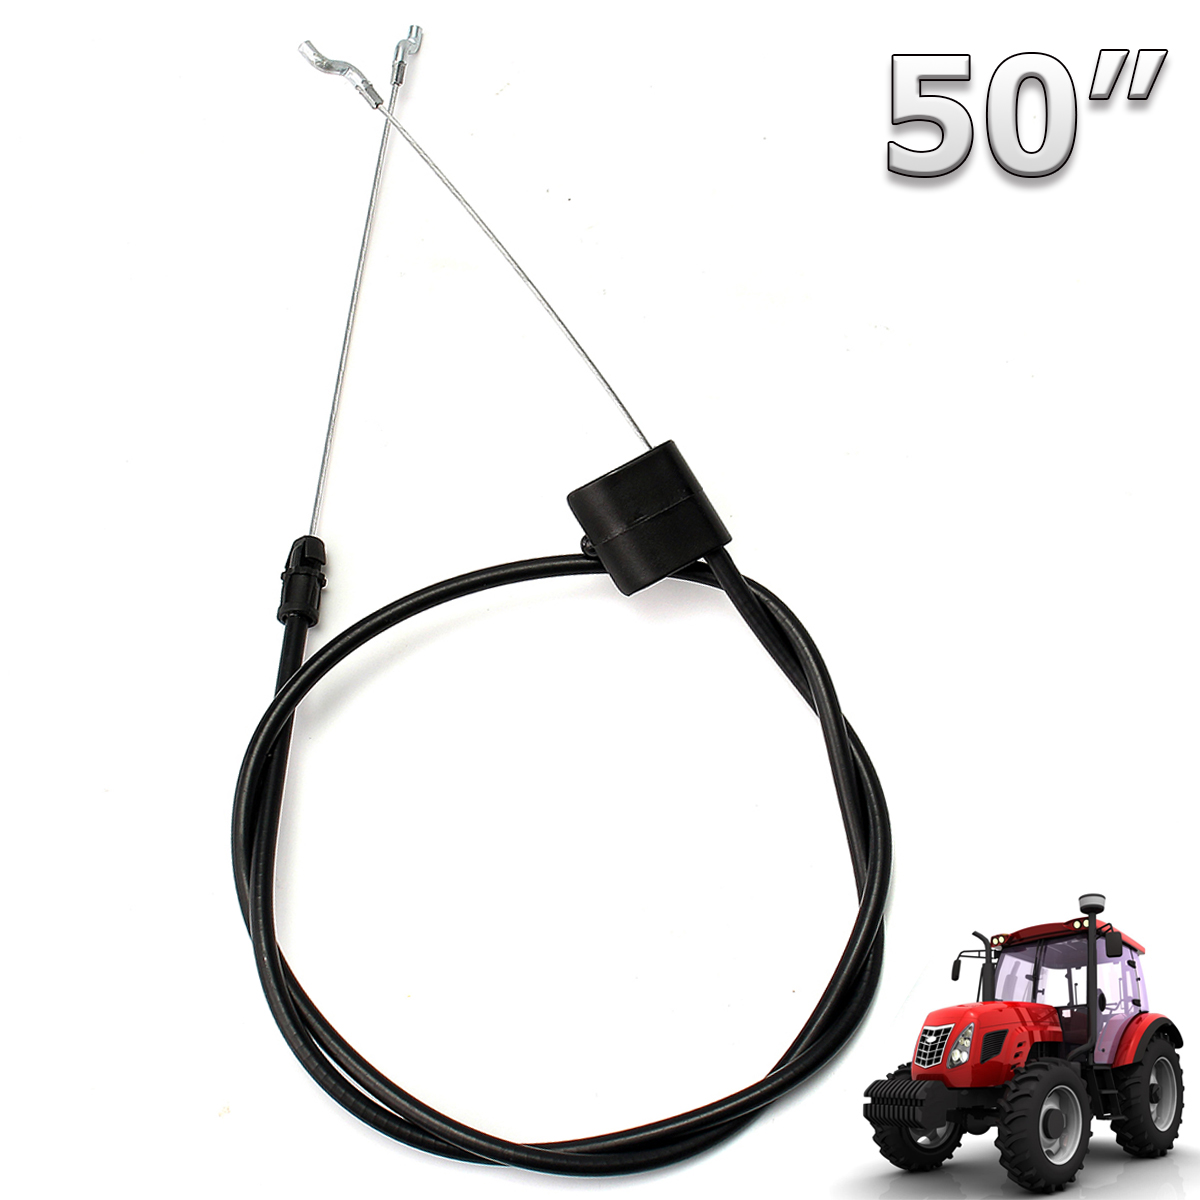 NEW 50inch Home Garden Tools Parts Lawn Mower Lawnmowers Throttle Pull Engine Zone Control Cable For MTD Push Mowers